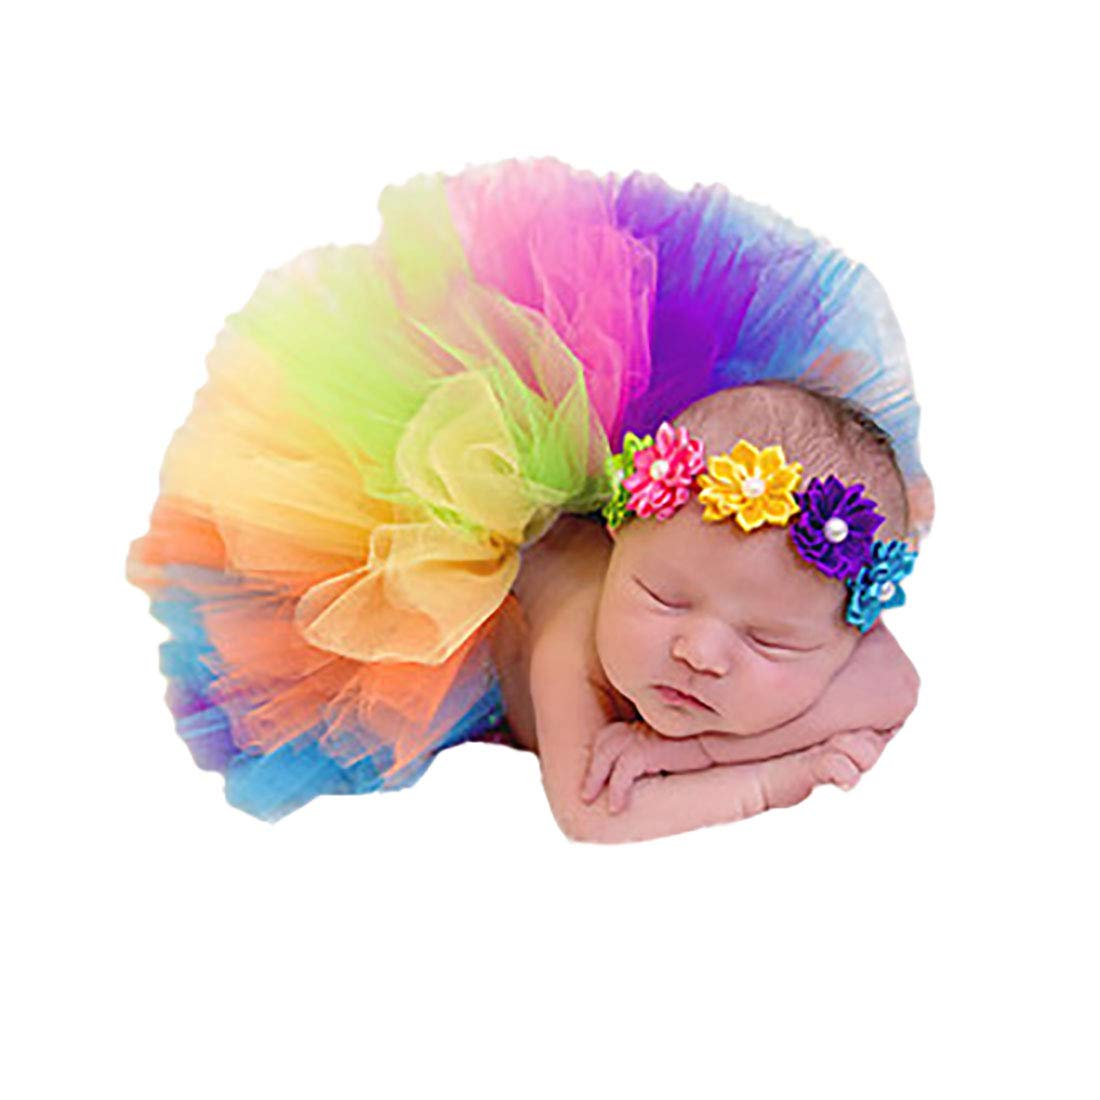 Boomly Baby Infant Newborn Photography Prop Rainbow Skirt + Elastic Floral Headband Photo Costume Outfits